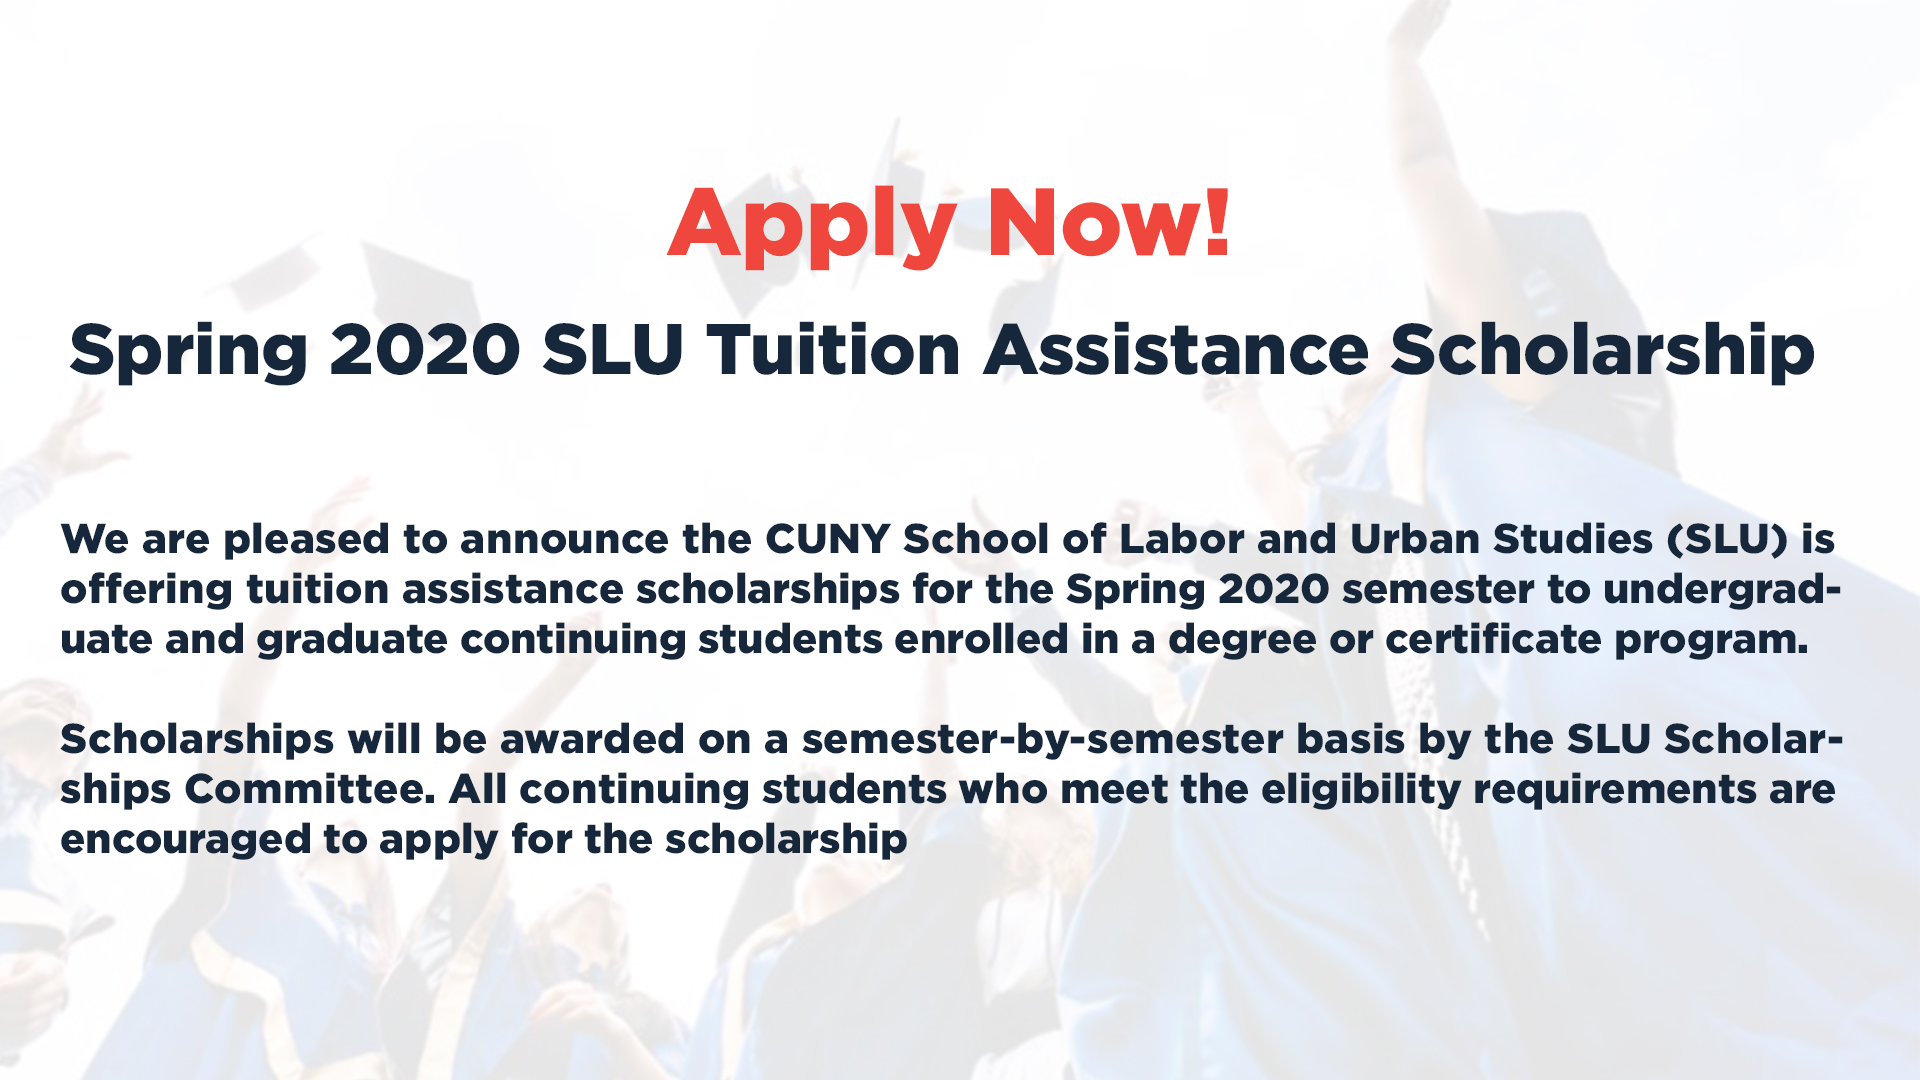 We are pleased to announce the CUNY School of Labor and Urban Studies (SLU) is offering tuition assistance scholarships for the Spring 2020 semester to undergraduate and graduate continuing students enrolled in a degree or certificate program. Scholarships will be awarded on a semester-by-semester basis by the SLU Scholarships Committee. All continuing students who meet the eligibility requirements are encouraged to apply for the scholarship